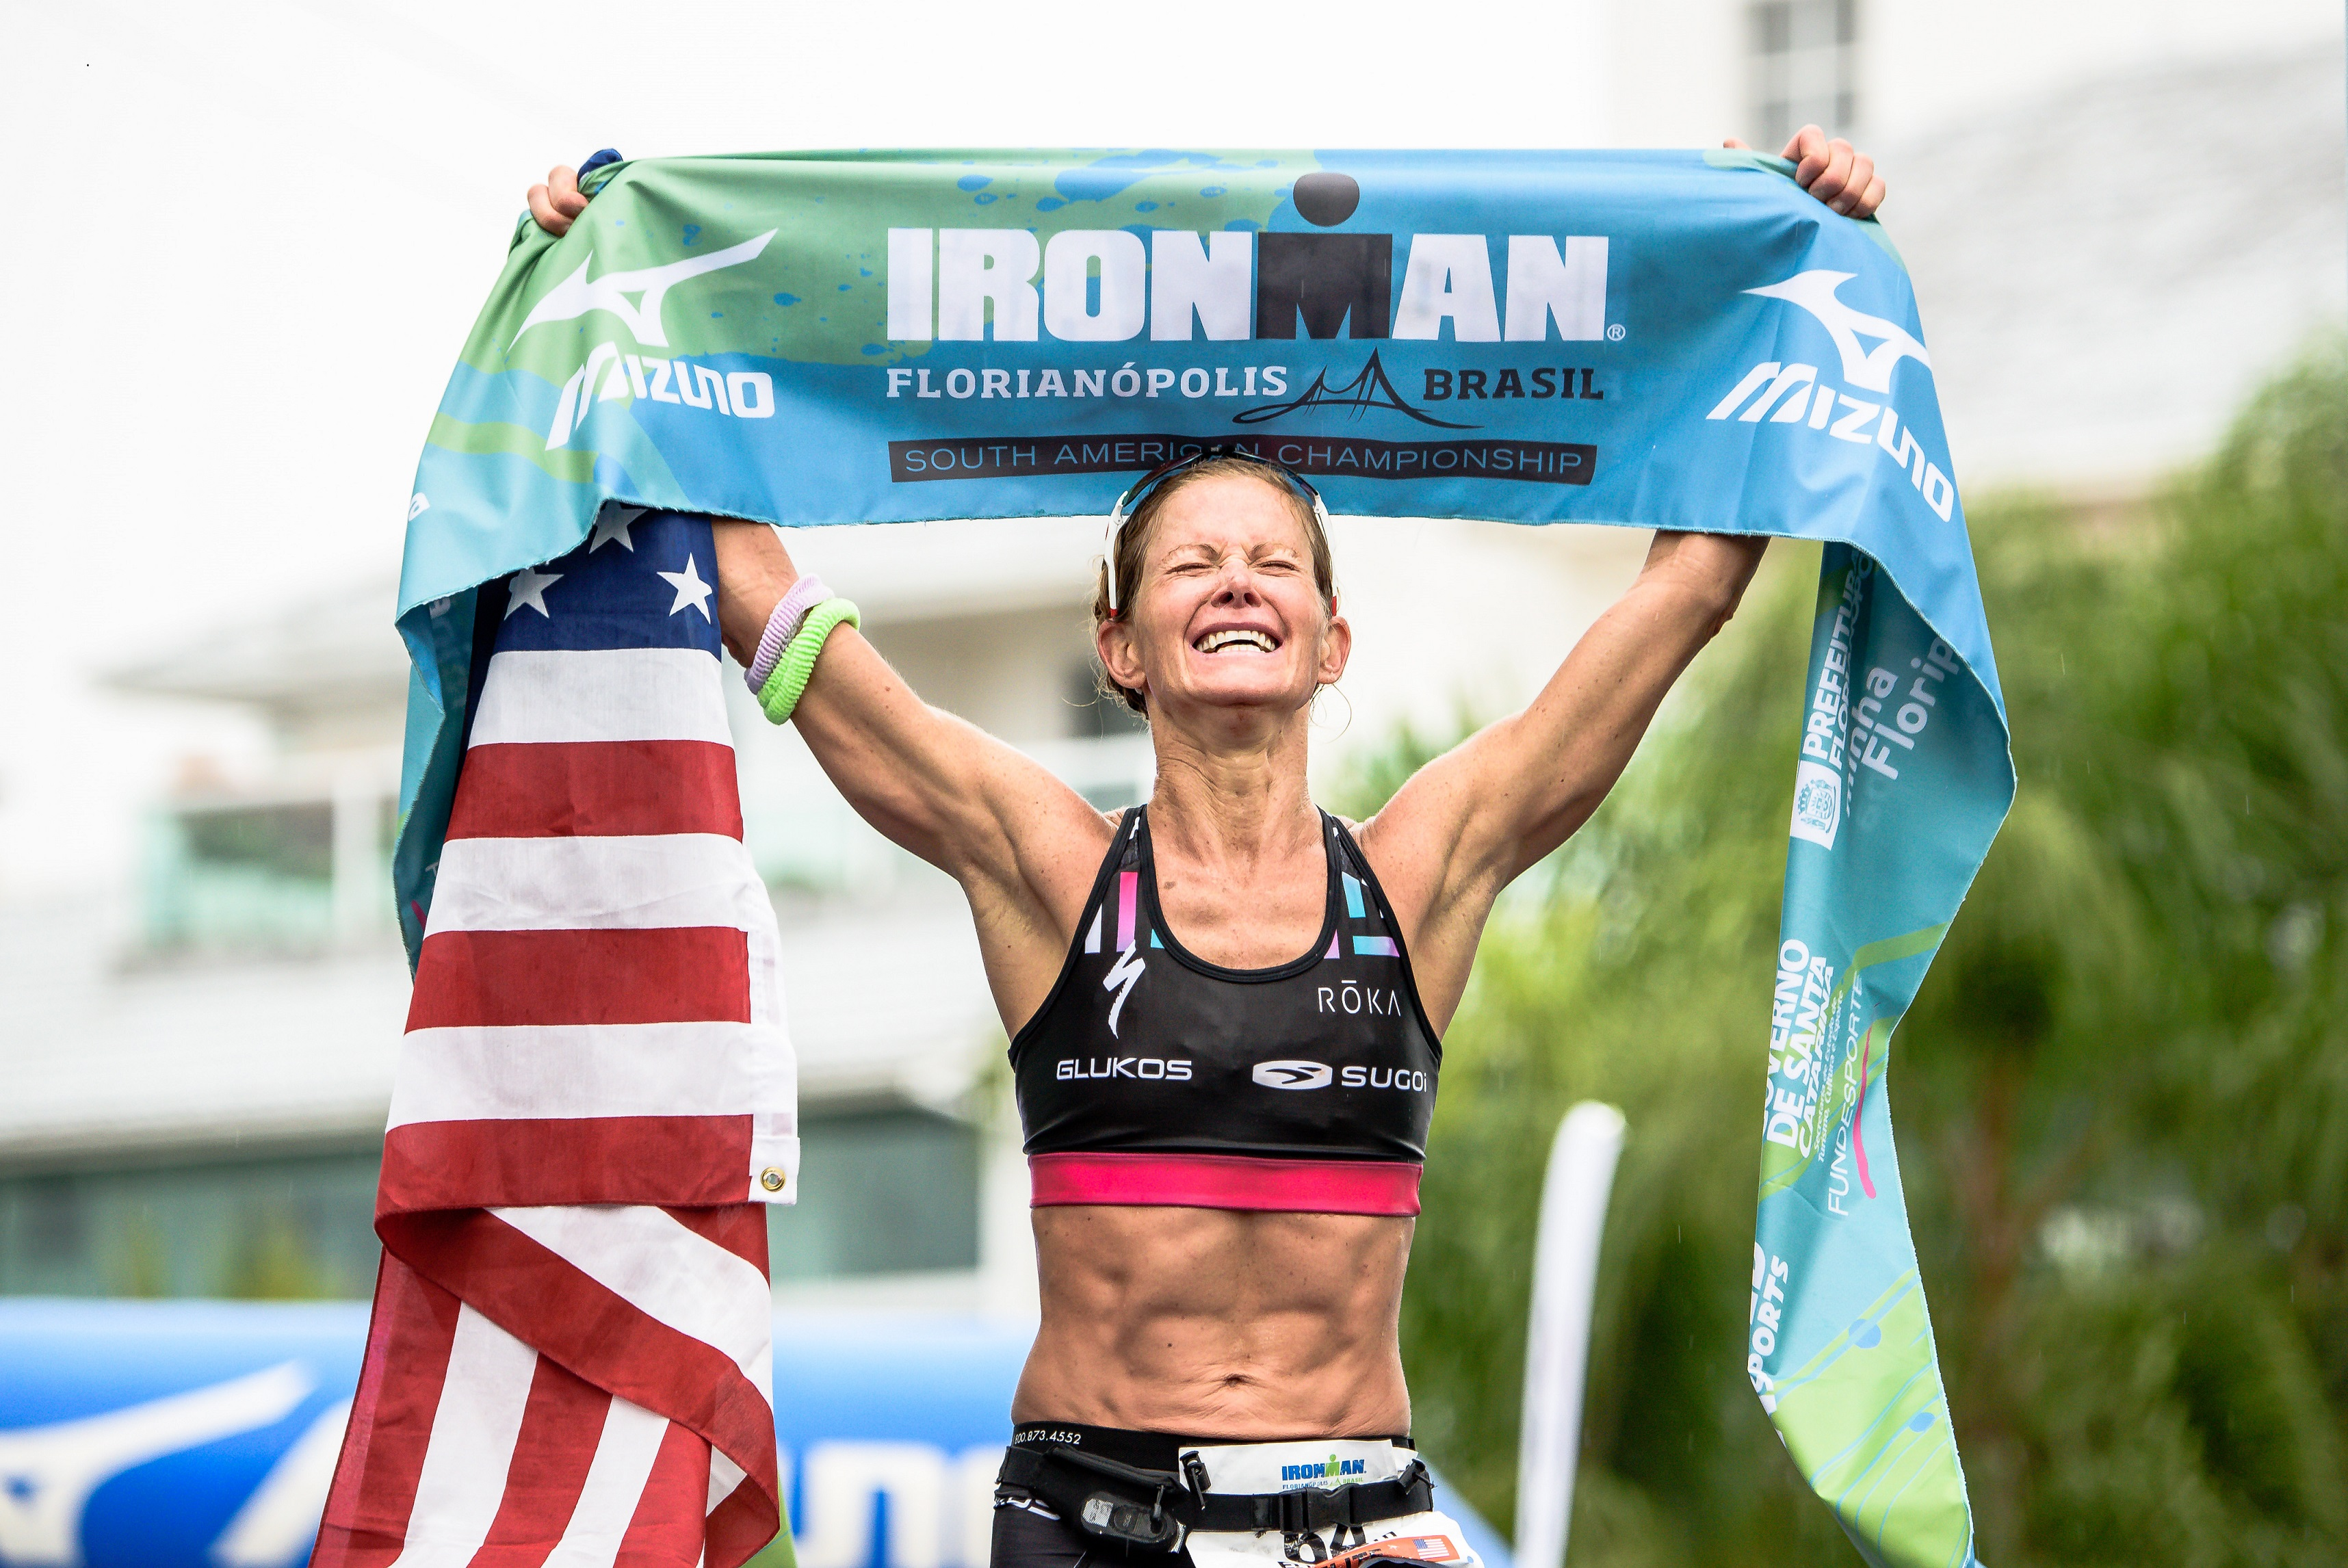 Pro Triathlete Liz Lyles Wins IRONMAN Florianopolis, the South American Championships in Brazil, setting a new course record; Kona ready.